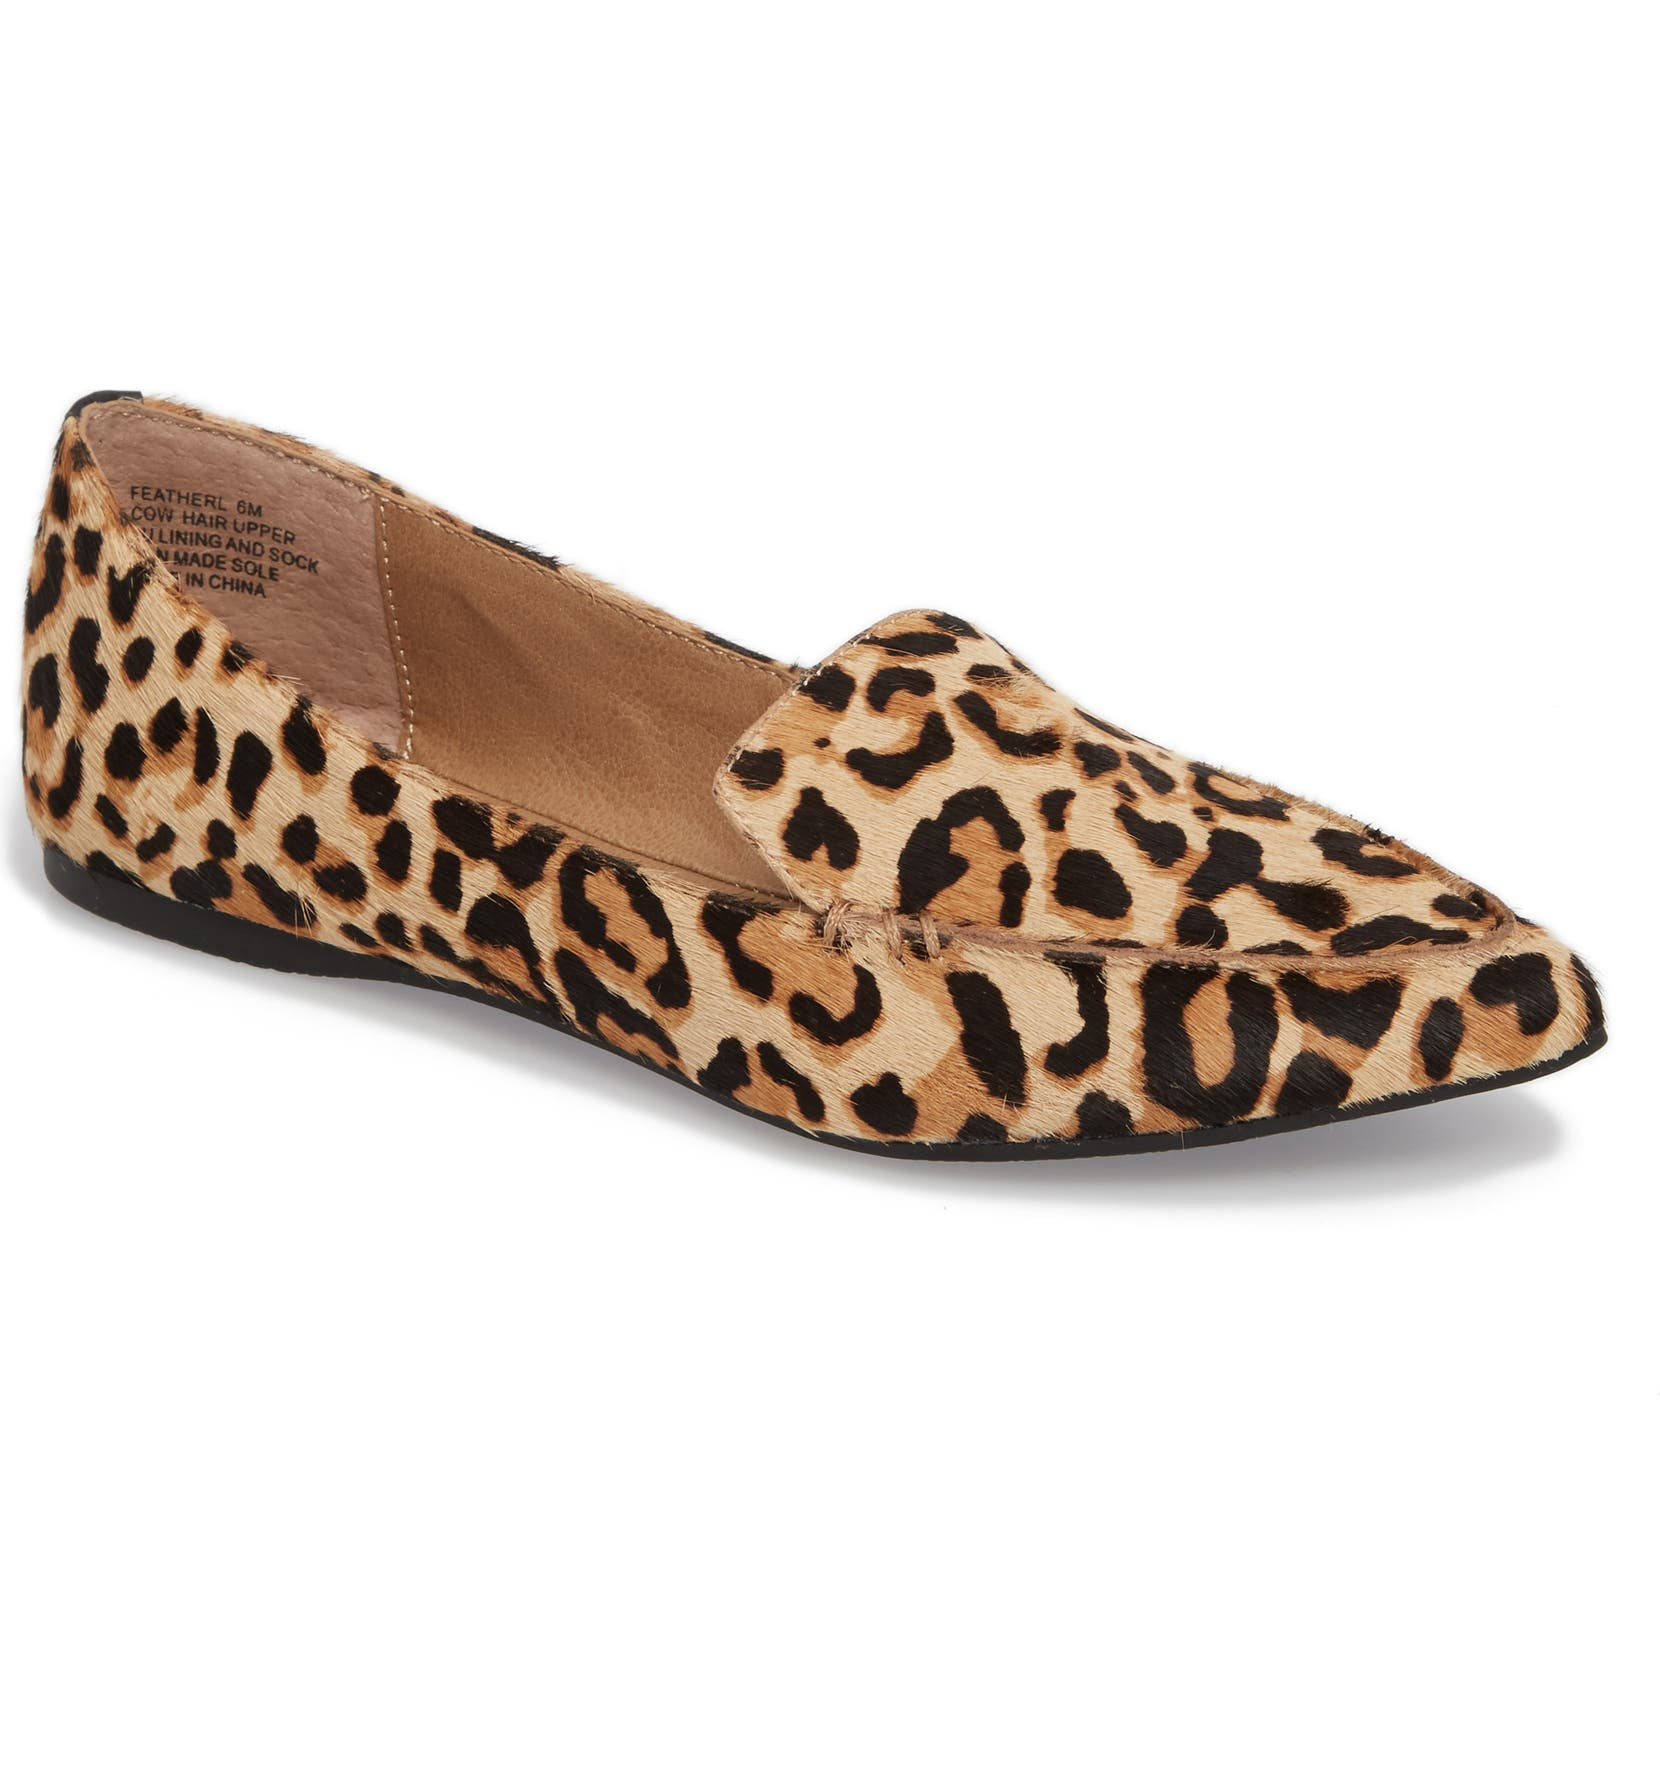 6fb67091c568 Steve Madden Feather-L Genuine Calf Hair Loafer Flat (Women) | Nordstrom